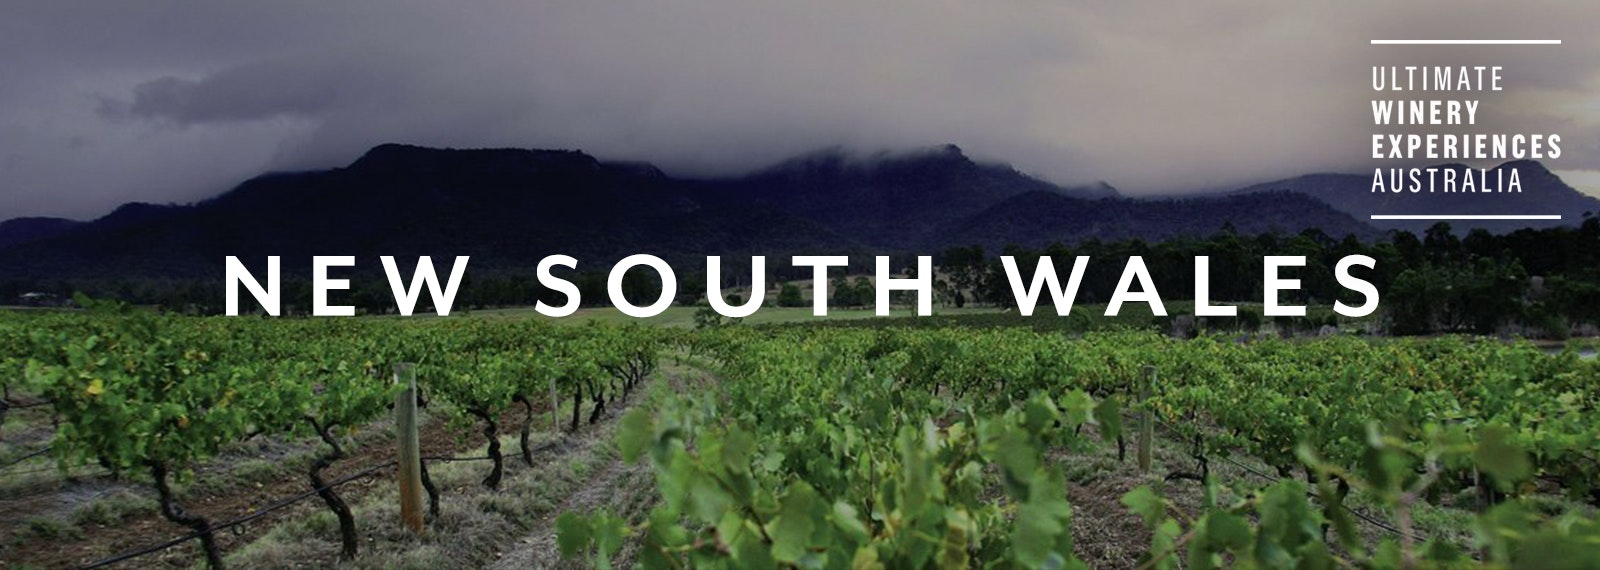 Ultimate Winery Experiences Australia - New South Wales